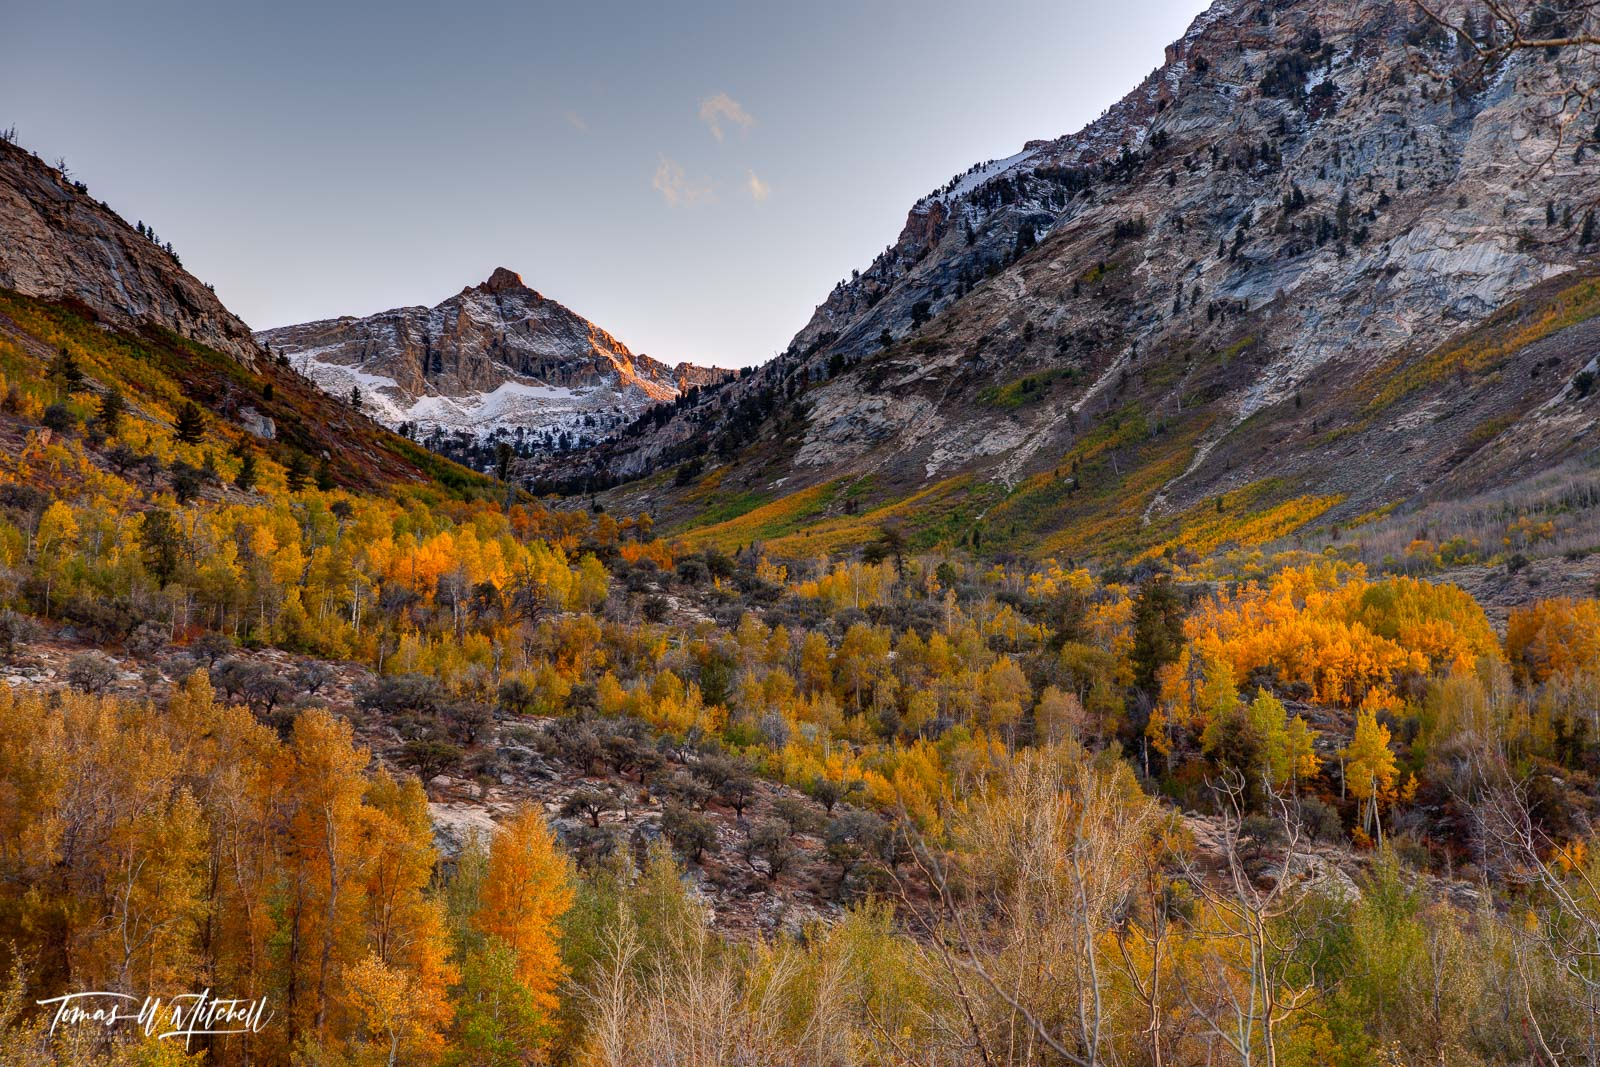 limited edition, fine art, prints, lamoille canyon, nevada, thomas canyon, mount fitzgerald, golden, yellow aspens, mountain, quaking aspens, leaves, evening, pink, photographs, fall, photo